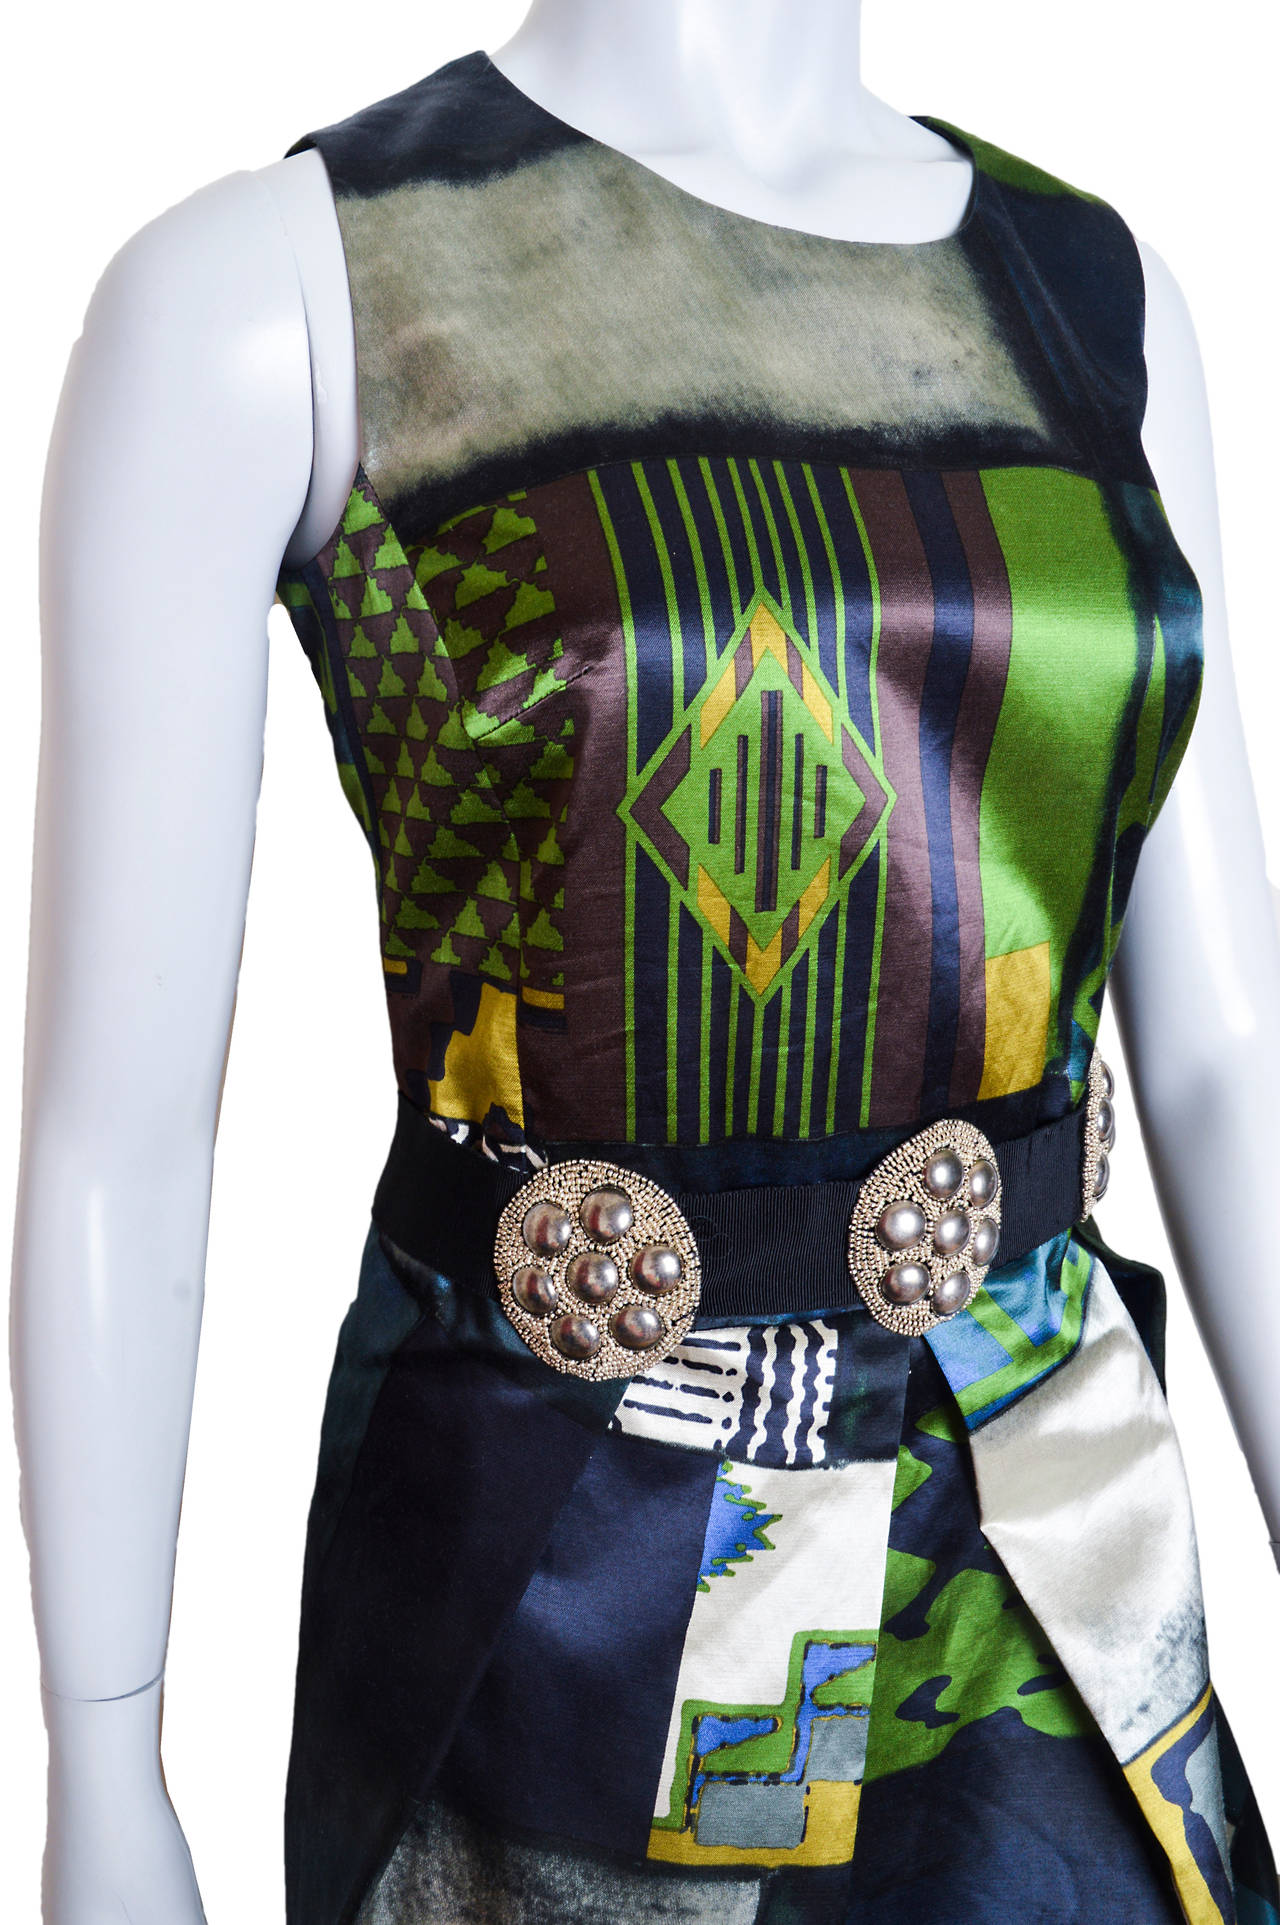 Subtle colors and a strong geometric pattern adorn this Etro dress. Semi sheen satin made of rayon/cotton blend. The centerpiece of this dress is the wide black self belt with three hand beaded embroidered silver medallions. Fitted hourglass